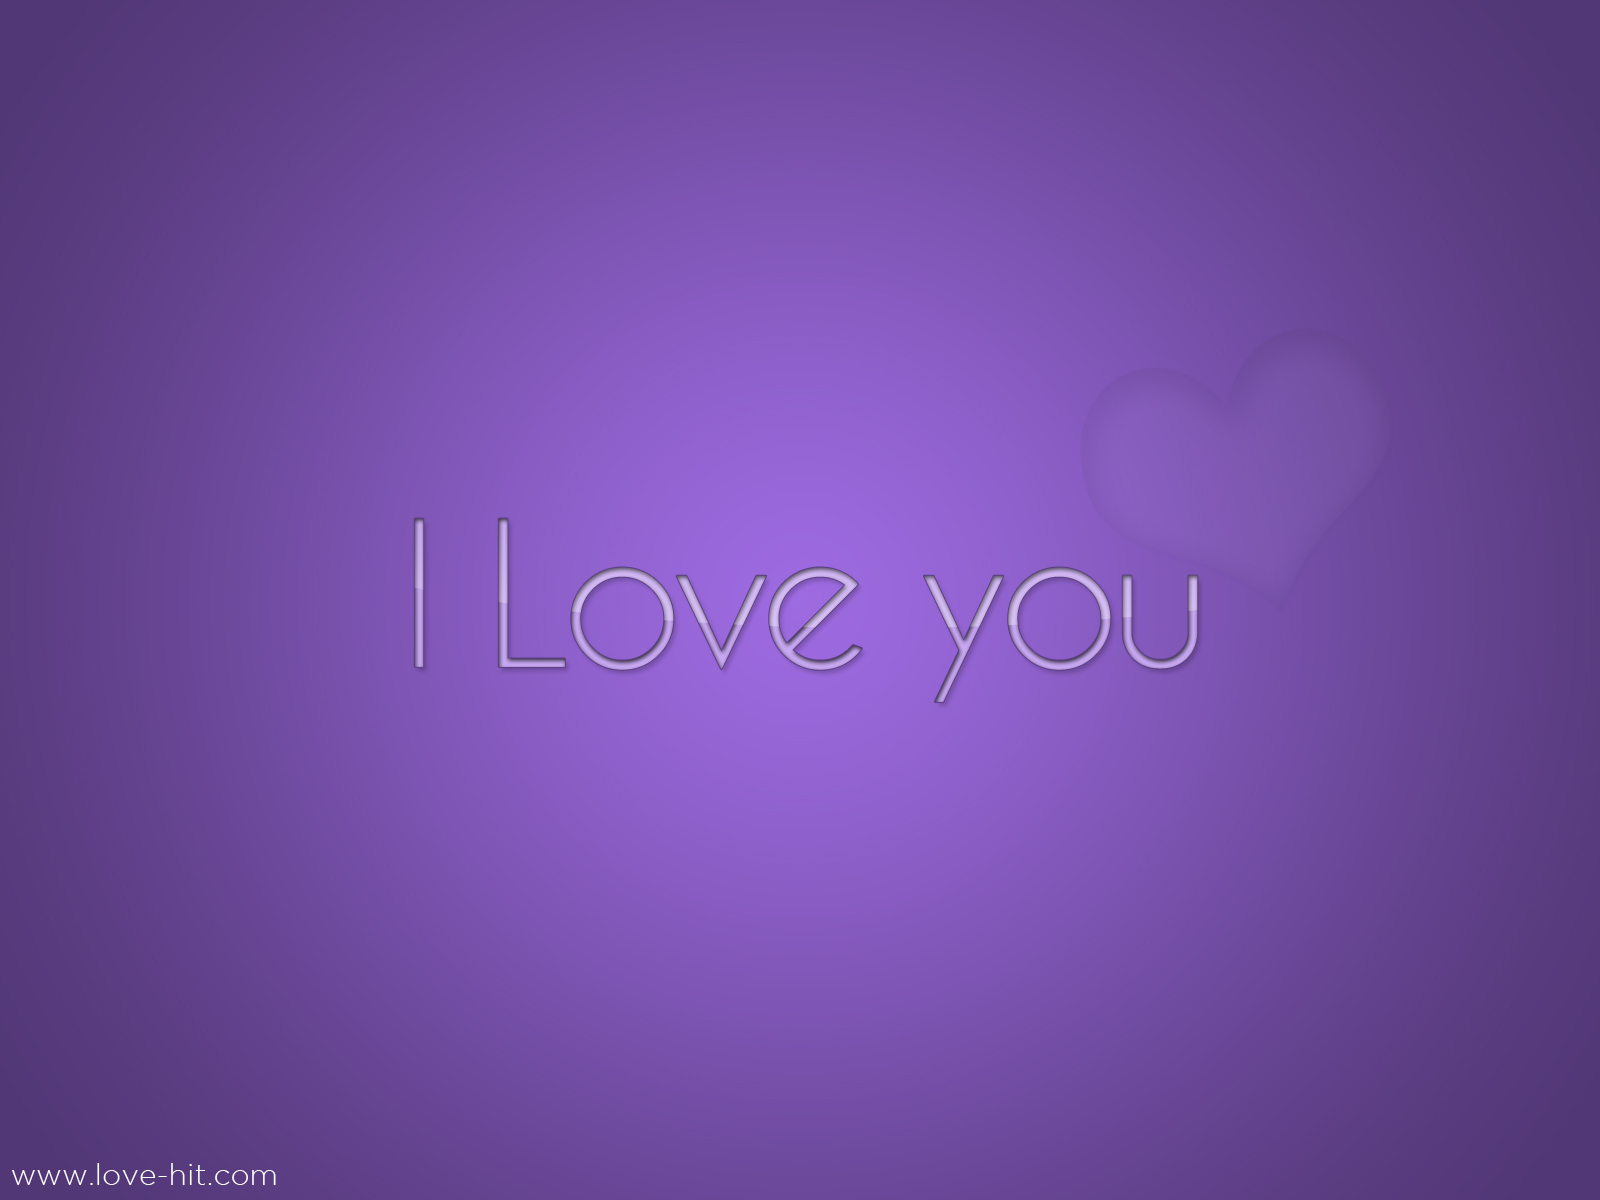 I Love you - Purple